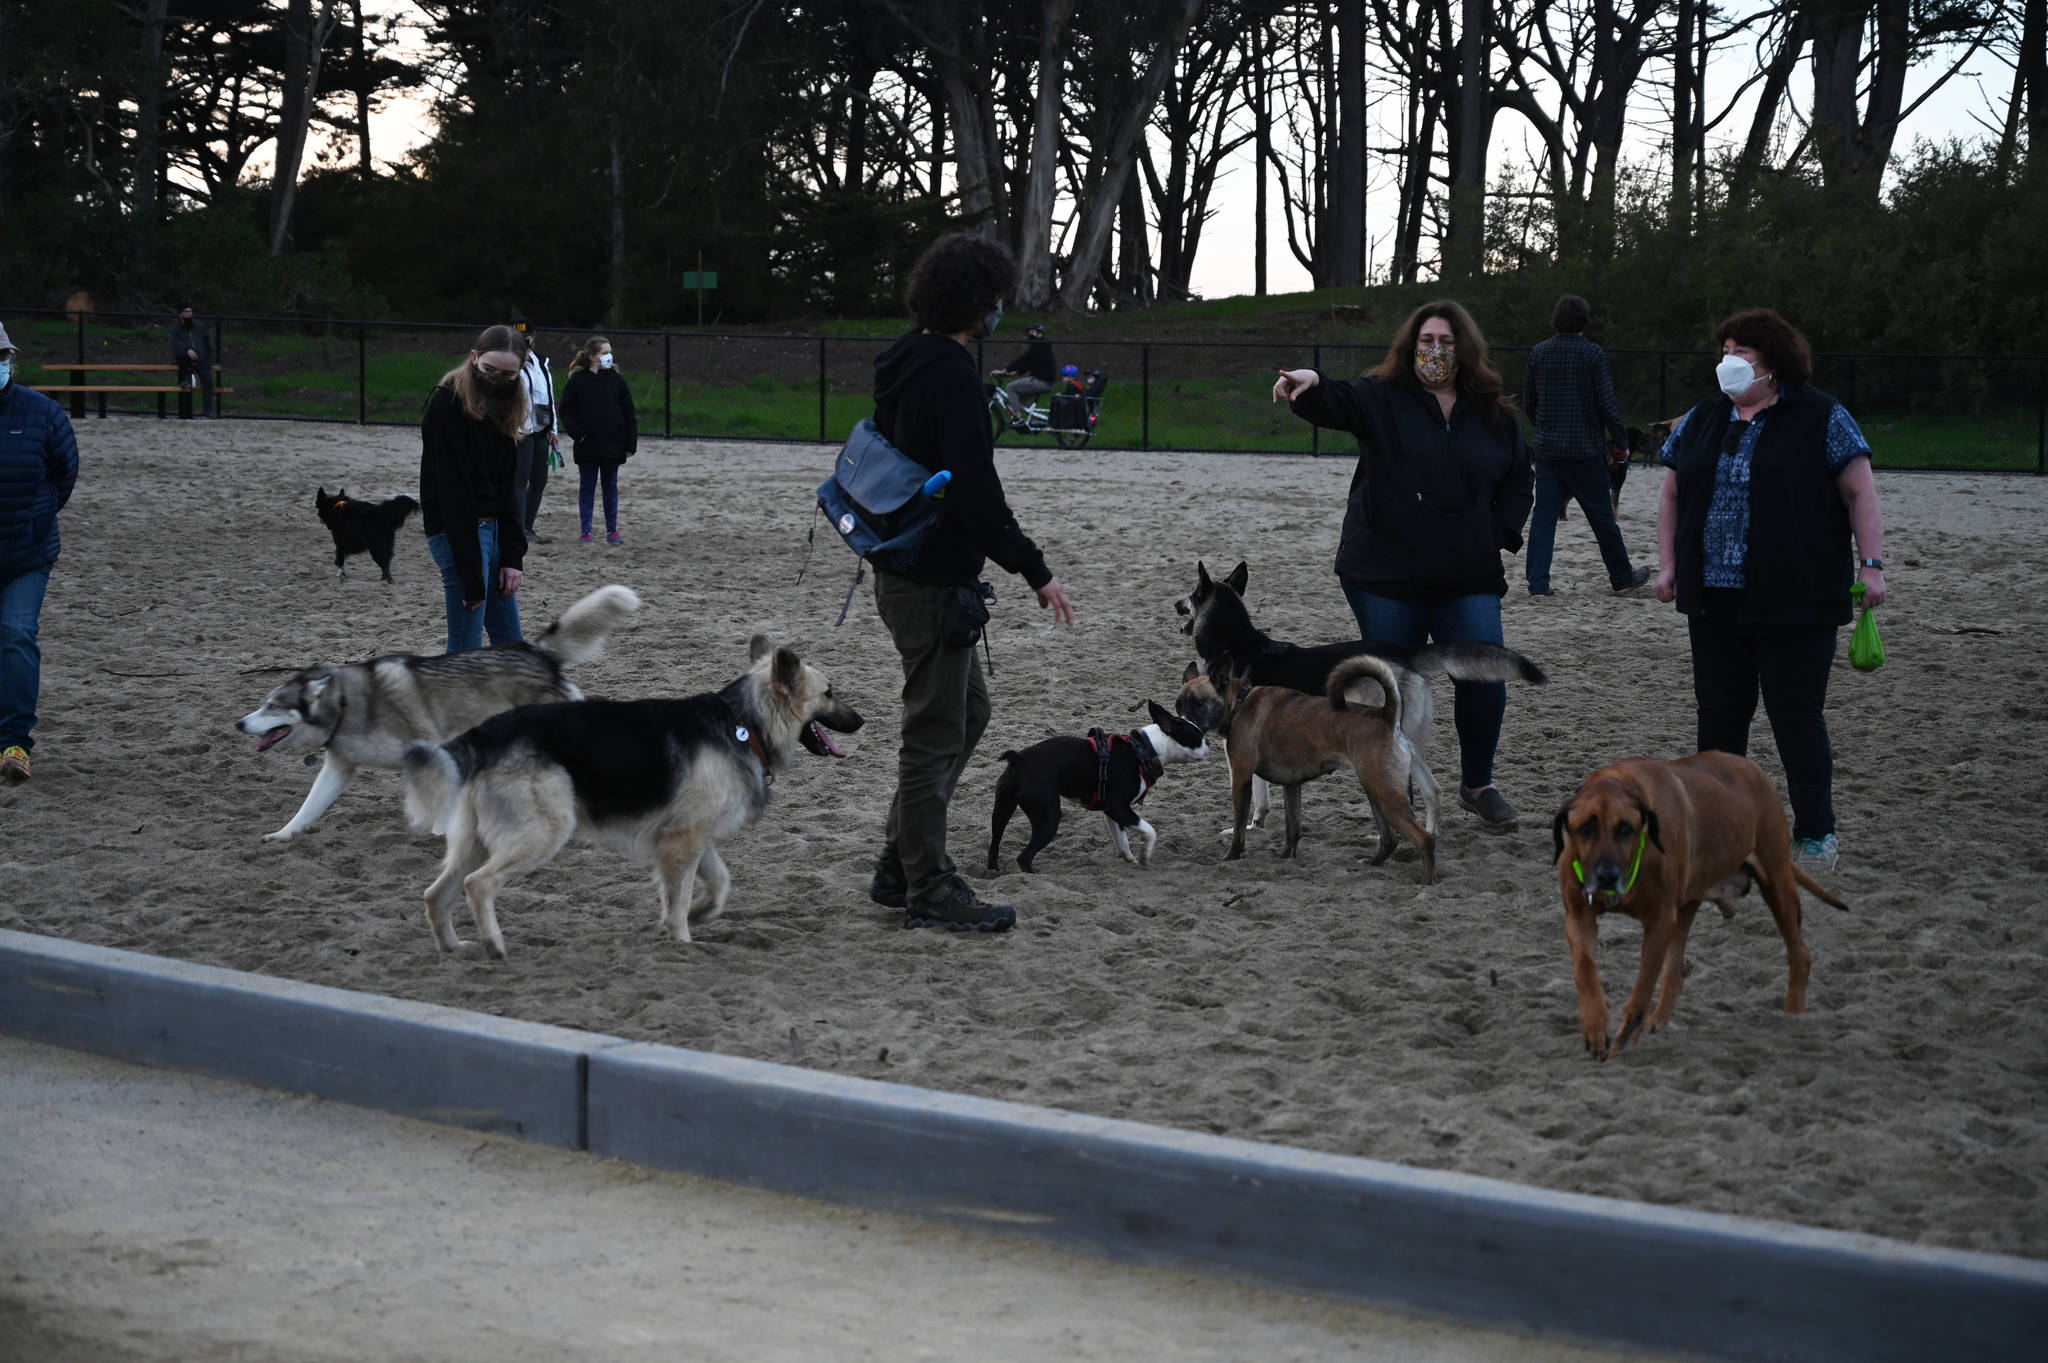 Dogs and their humans gathered Saturday at the newly renovated dog park in Golden Gate Park. (Samantha Laurey/Special to SF Examiner)